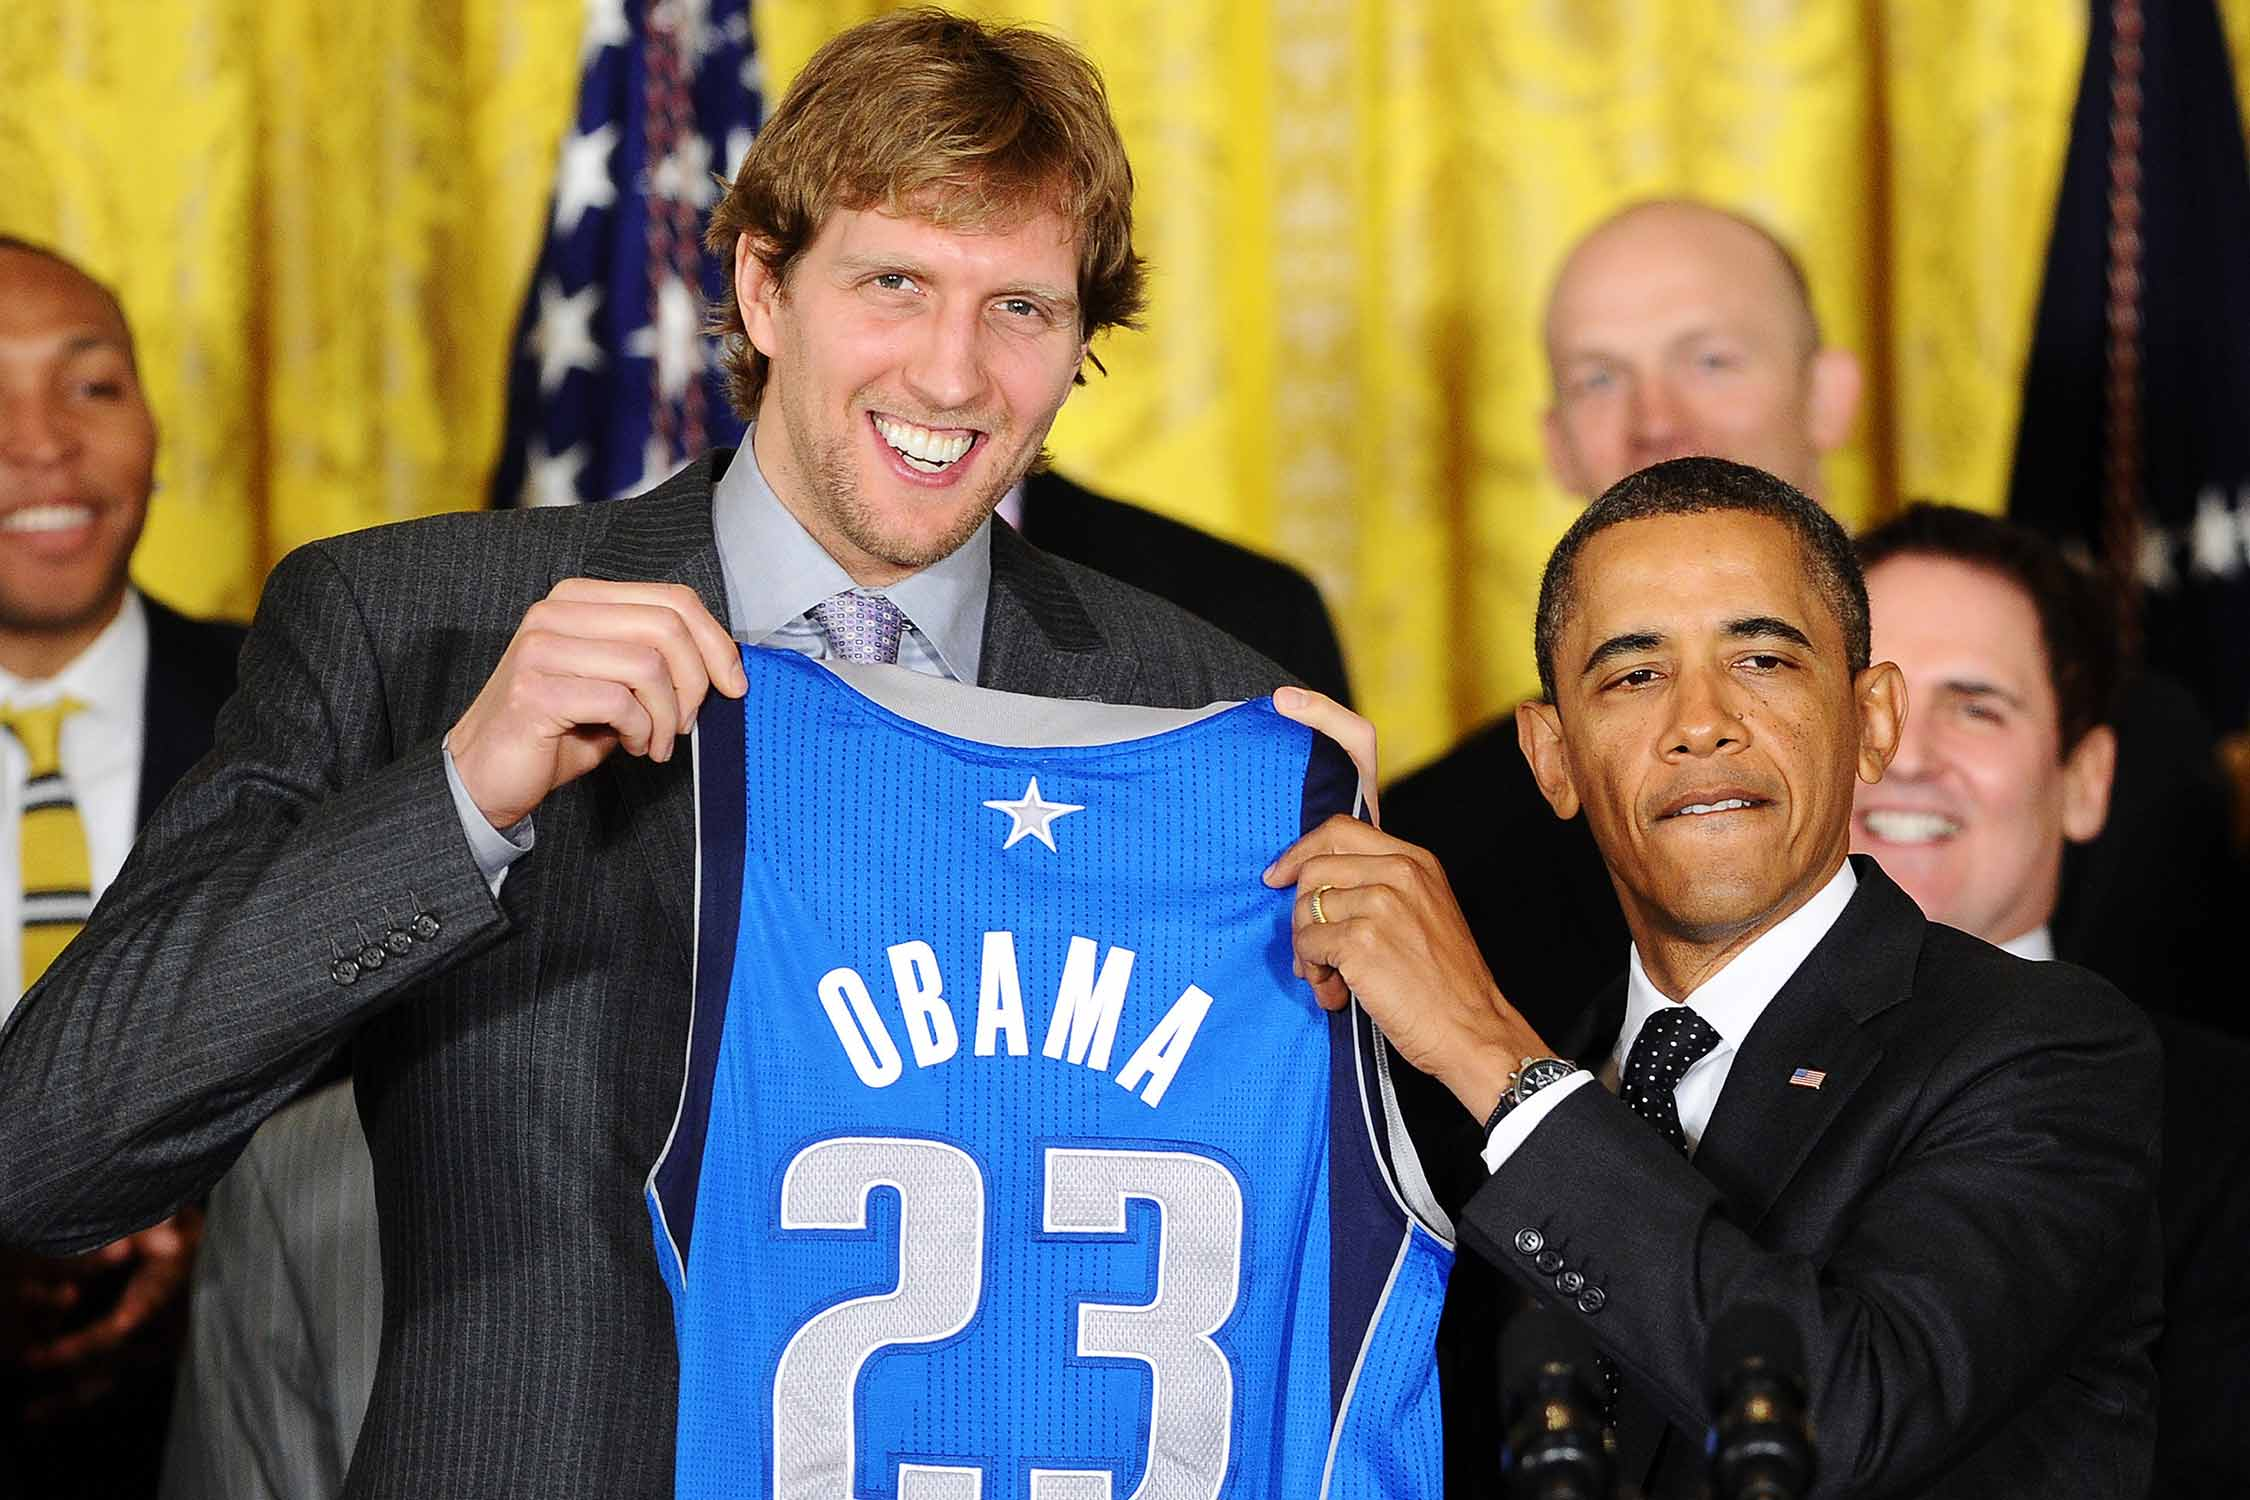 Dirk Nowitzki presents President Barack Obama with a Mavs jersey during the Dallas Mavericks' White House visit in 2012.